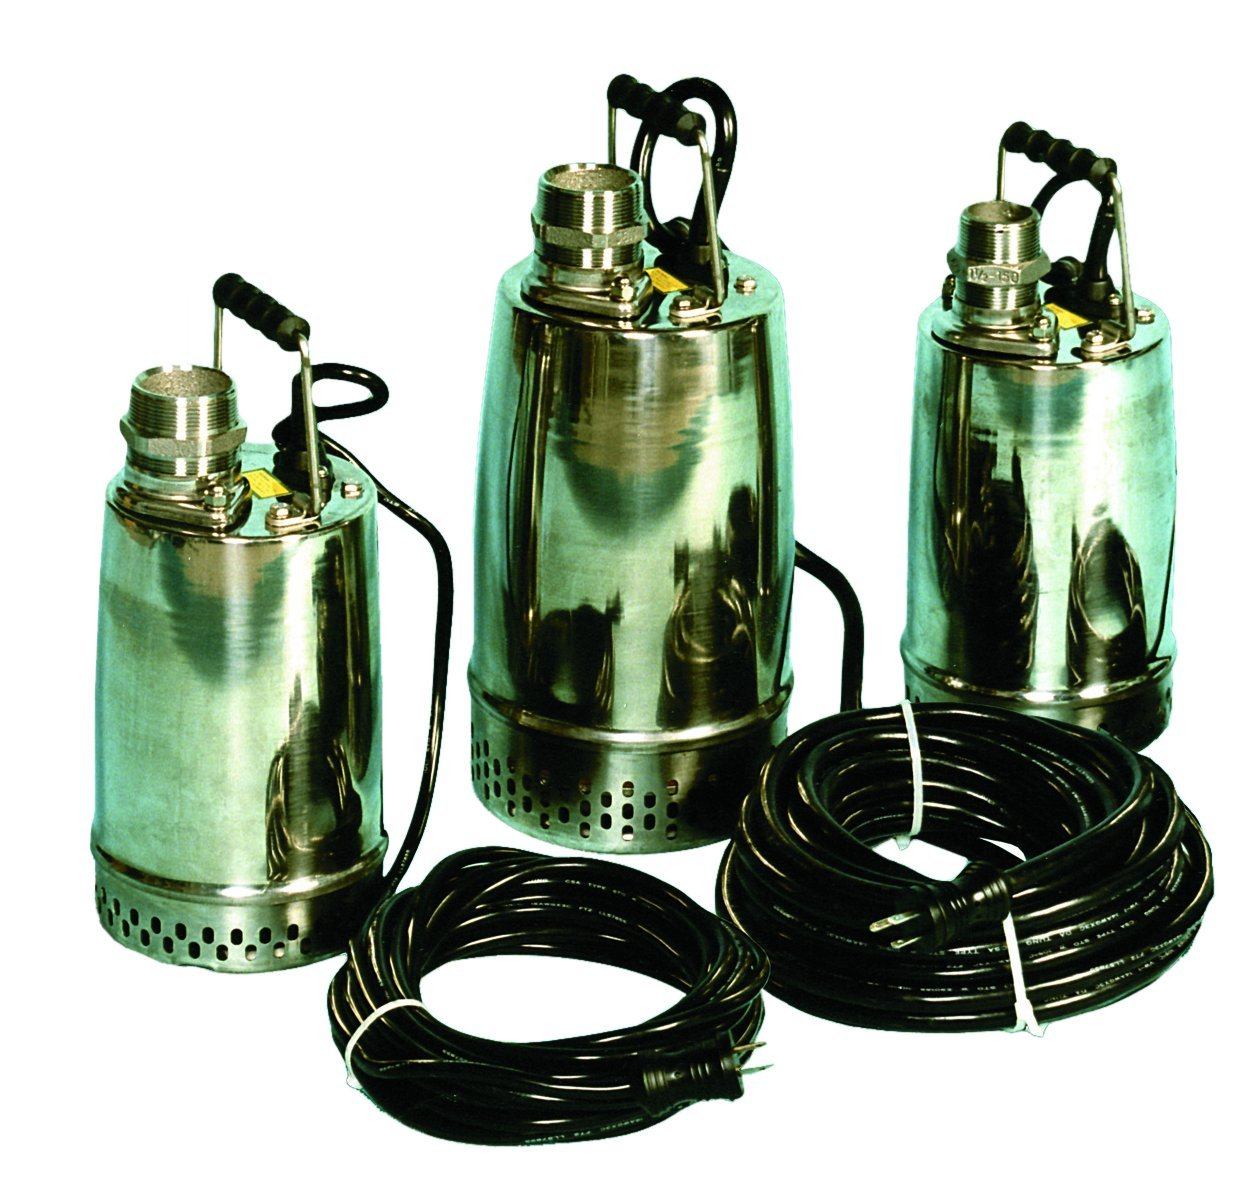 AMT Pump 02X11 Submersible Pump, Stainless Steel 304, 1 HP, 115V, Curve C, 2'' NPT Male Discharge Port